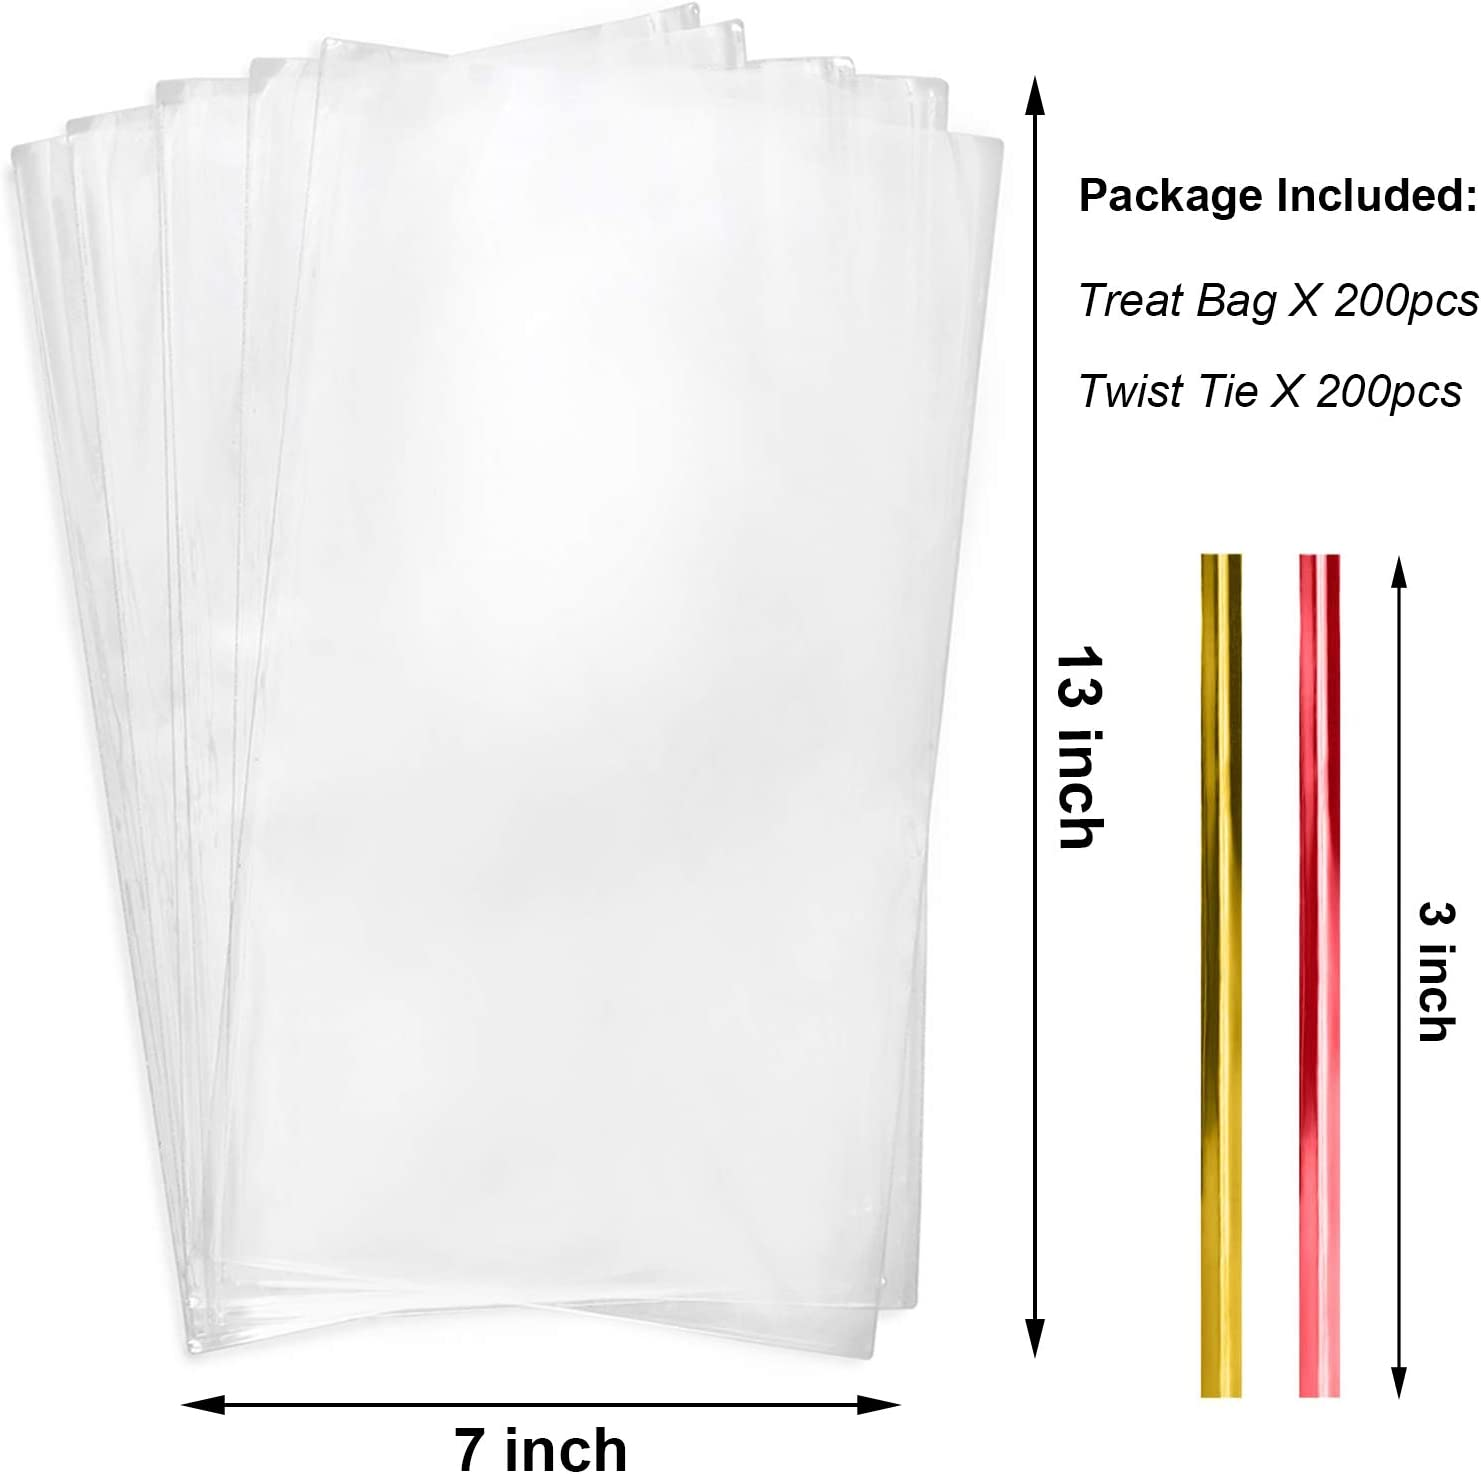 Cello Cellophane Treat Bags,200 PCS 2x10 Inches Clear Long OPP Plastic Bags with Twist Ties for Pretzel Rods,ICY Candy Popsicle